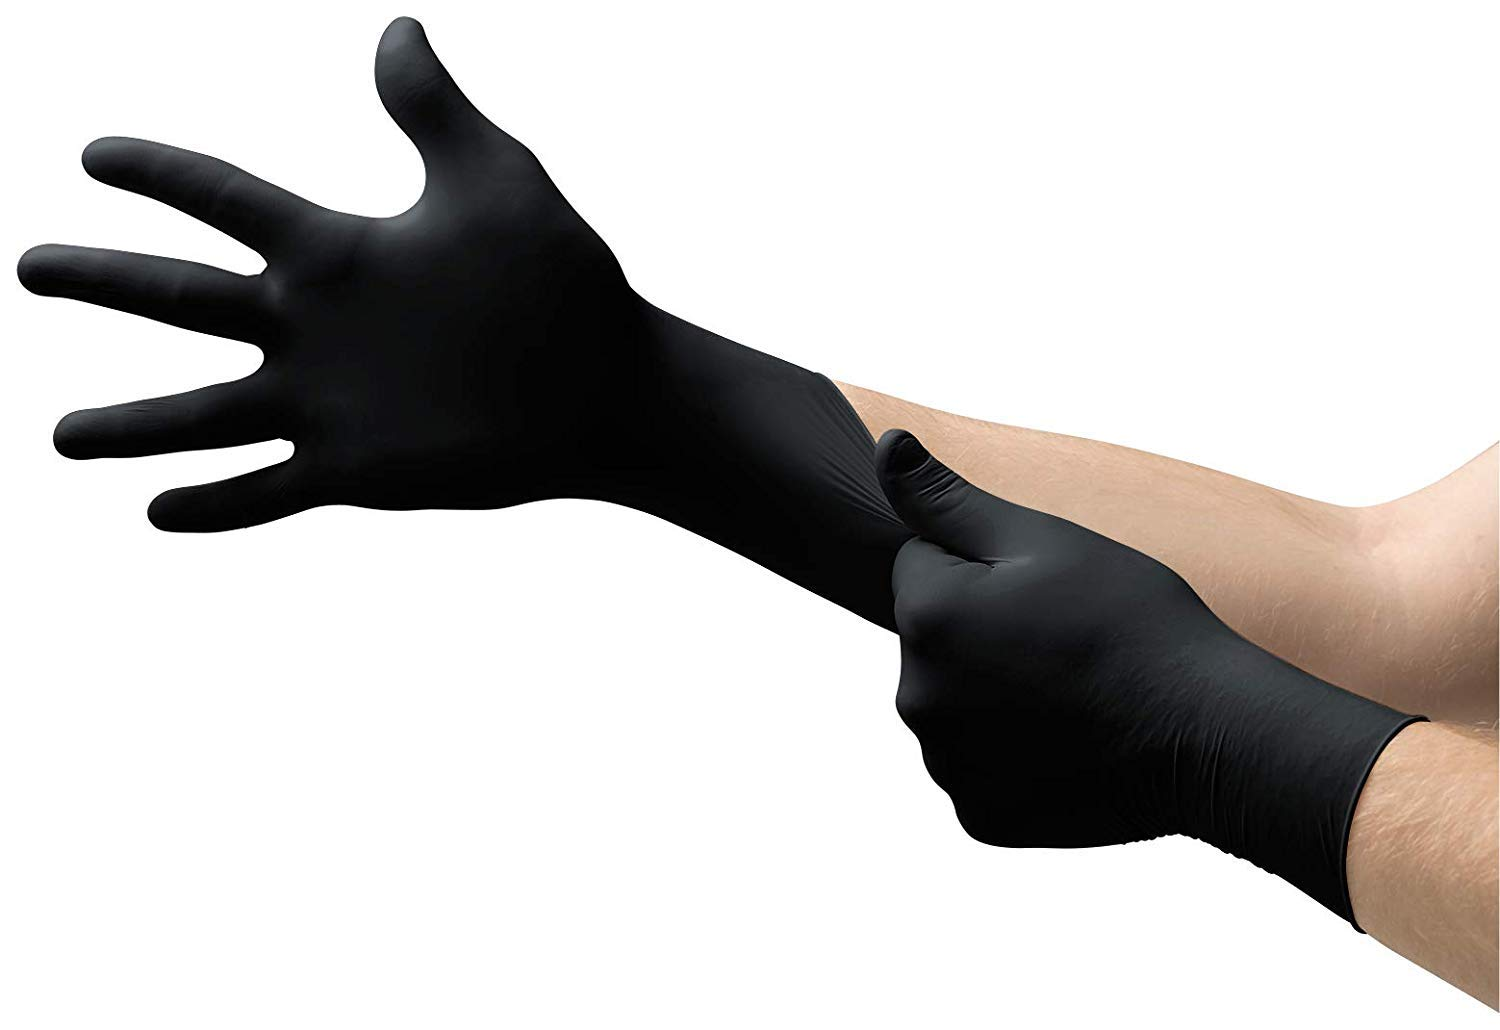 Microflex MK-296 Translated Black Disposable Limited time for free shipping Latex-Free Nitrile Po Gloves